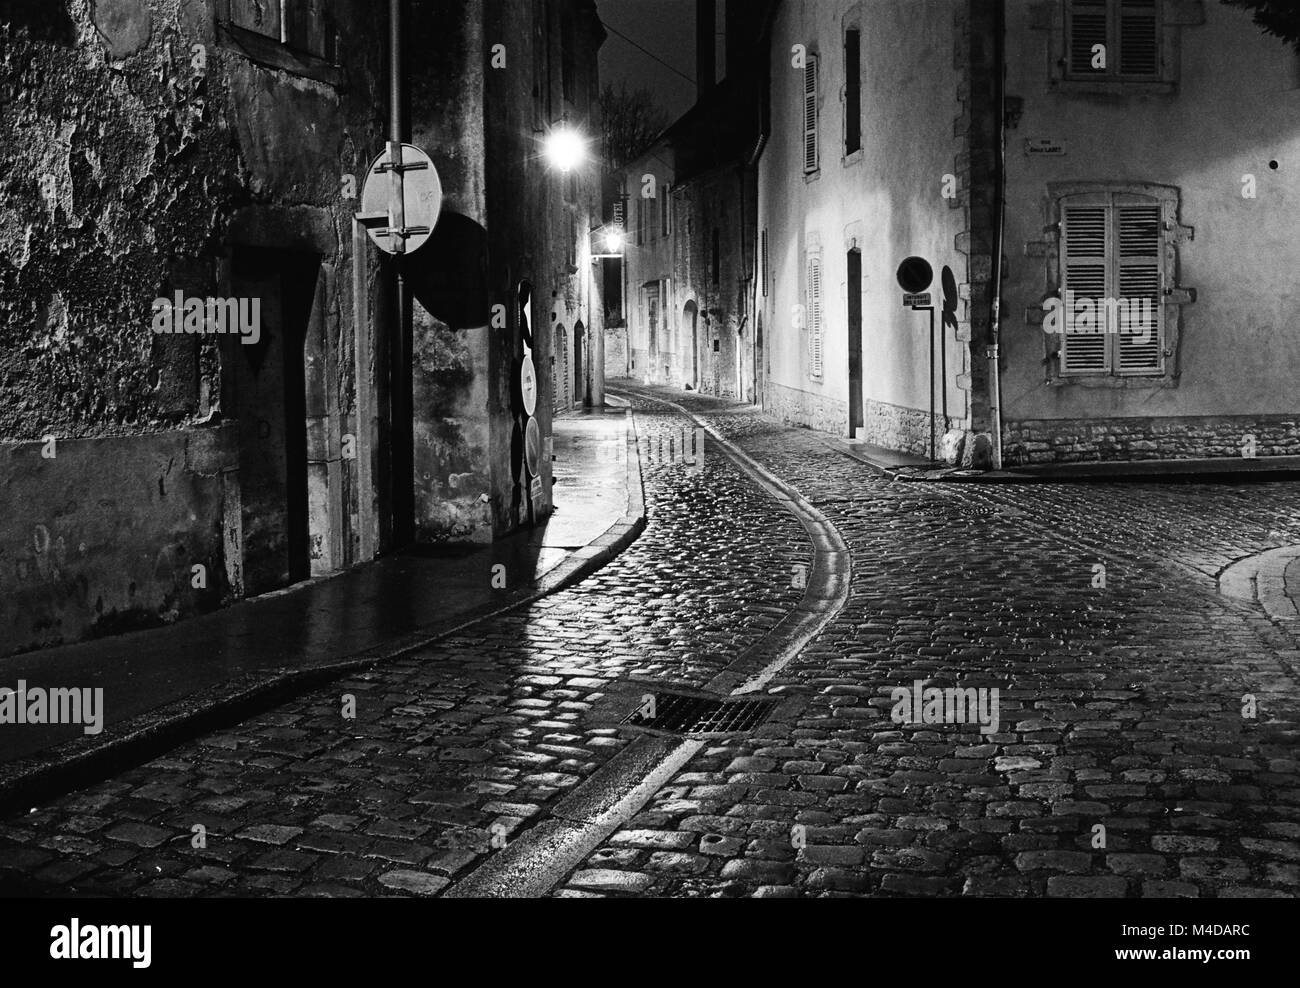 A night scene captures an empty street in the city of Beaune in France where the wet cobblestones are bright with - Stock Image